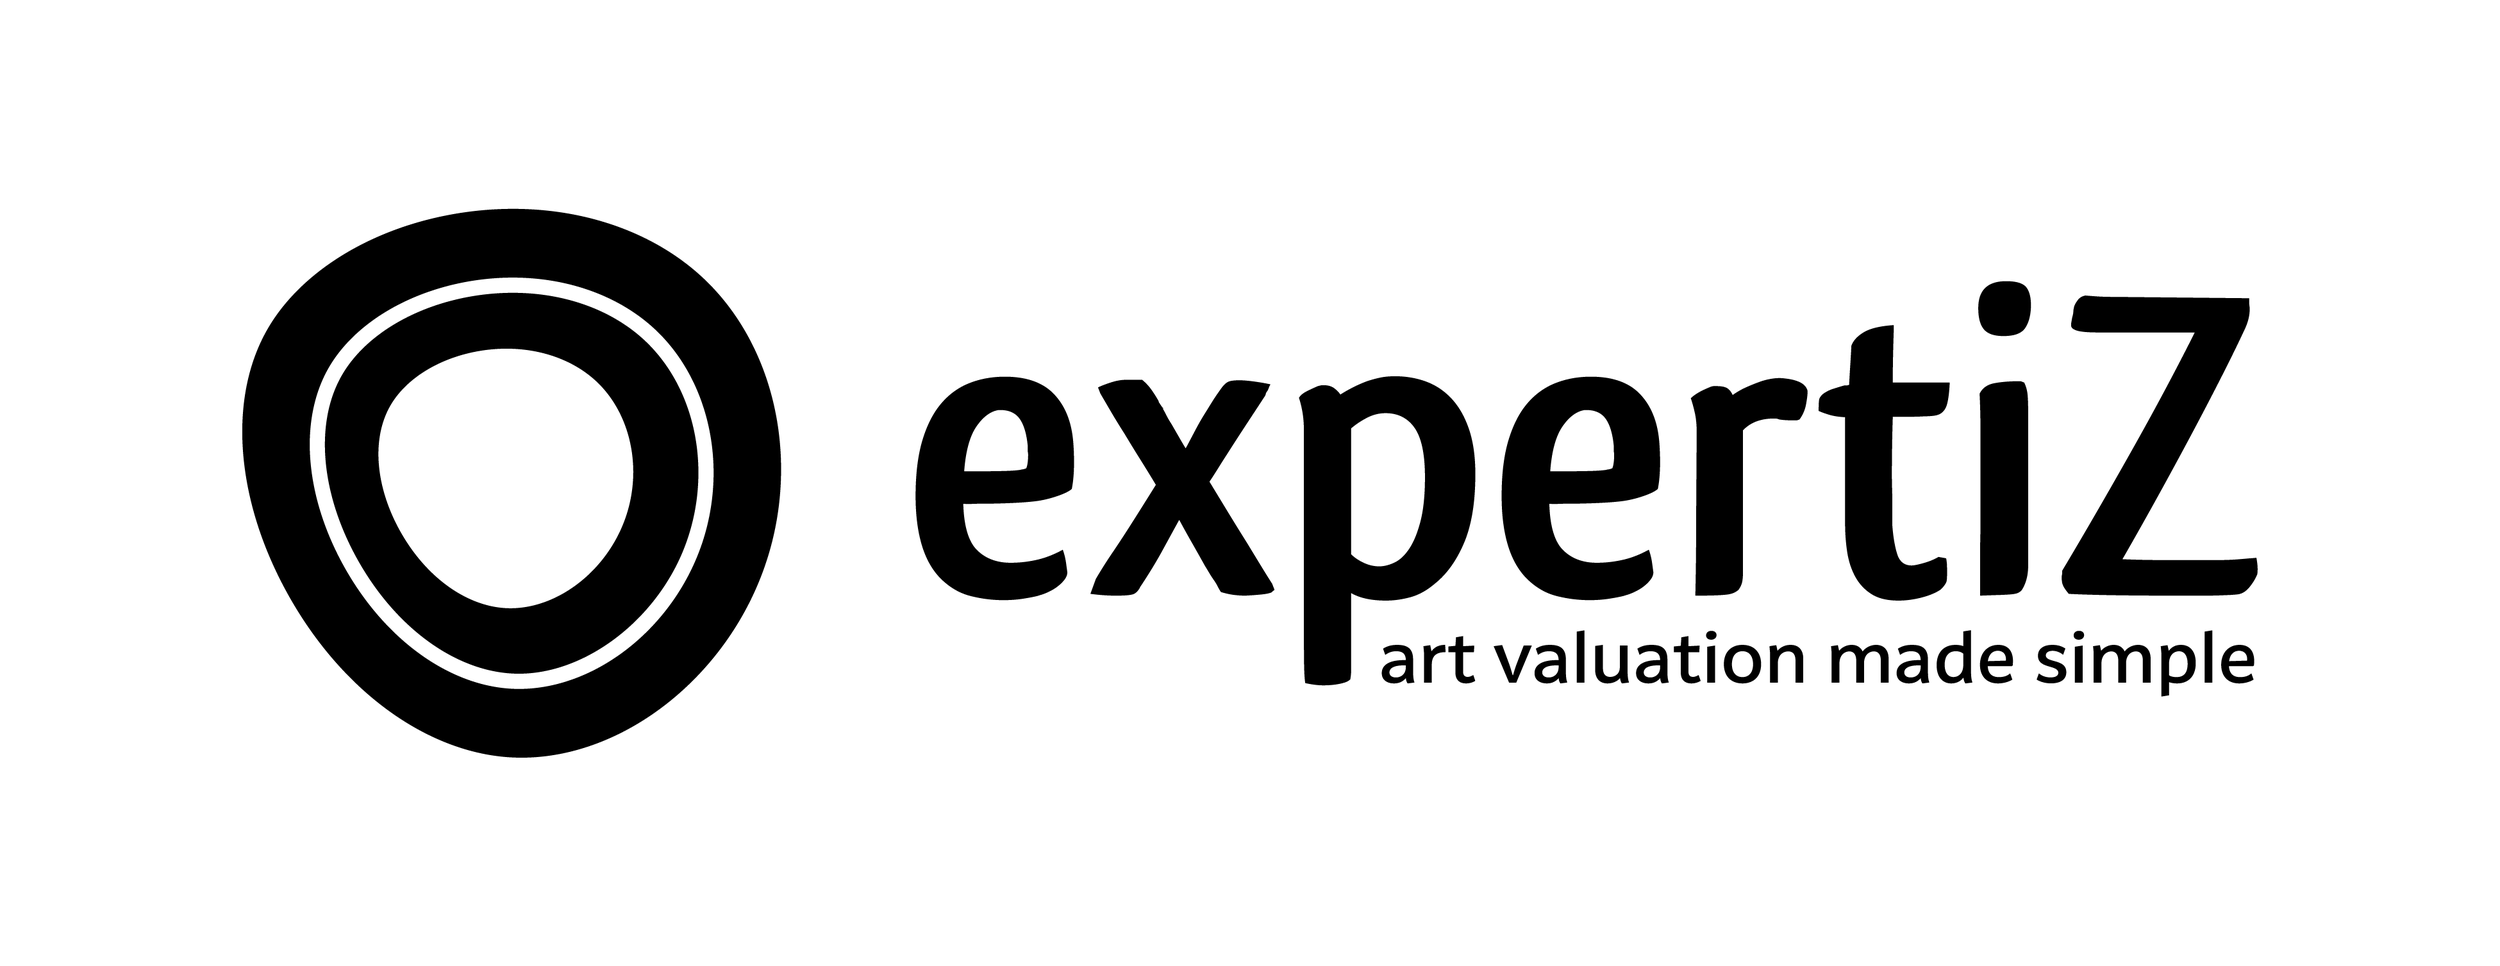 ExpertiZ_final_Logo_Final_black.png